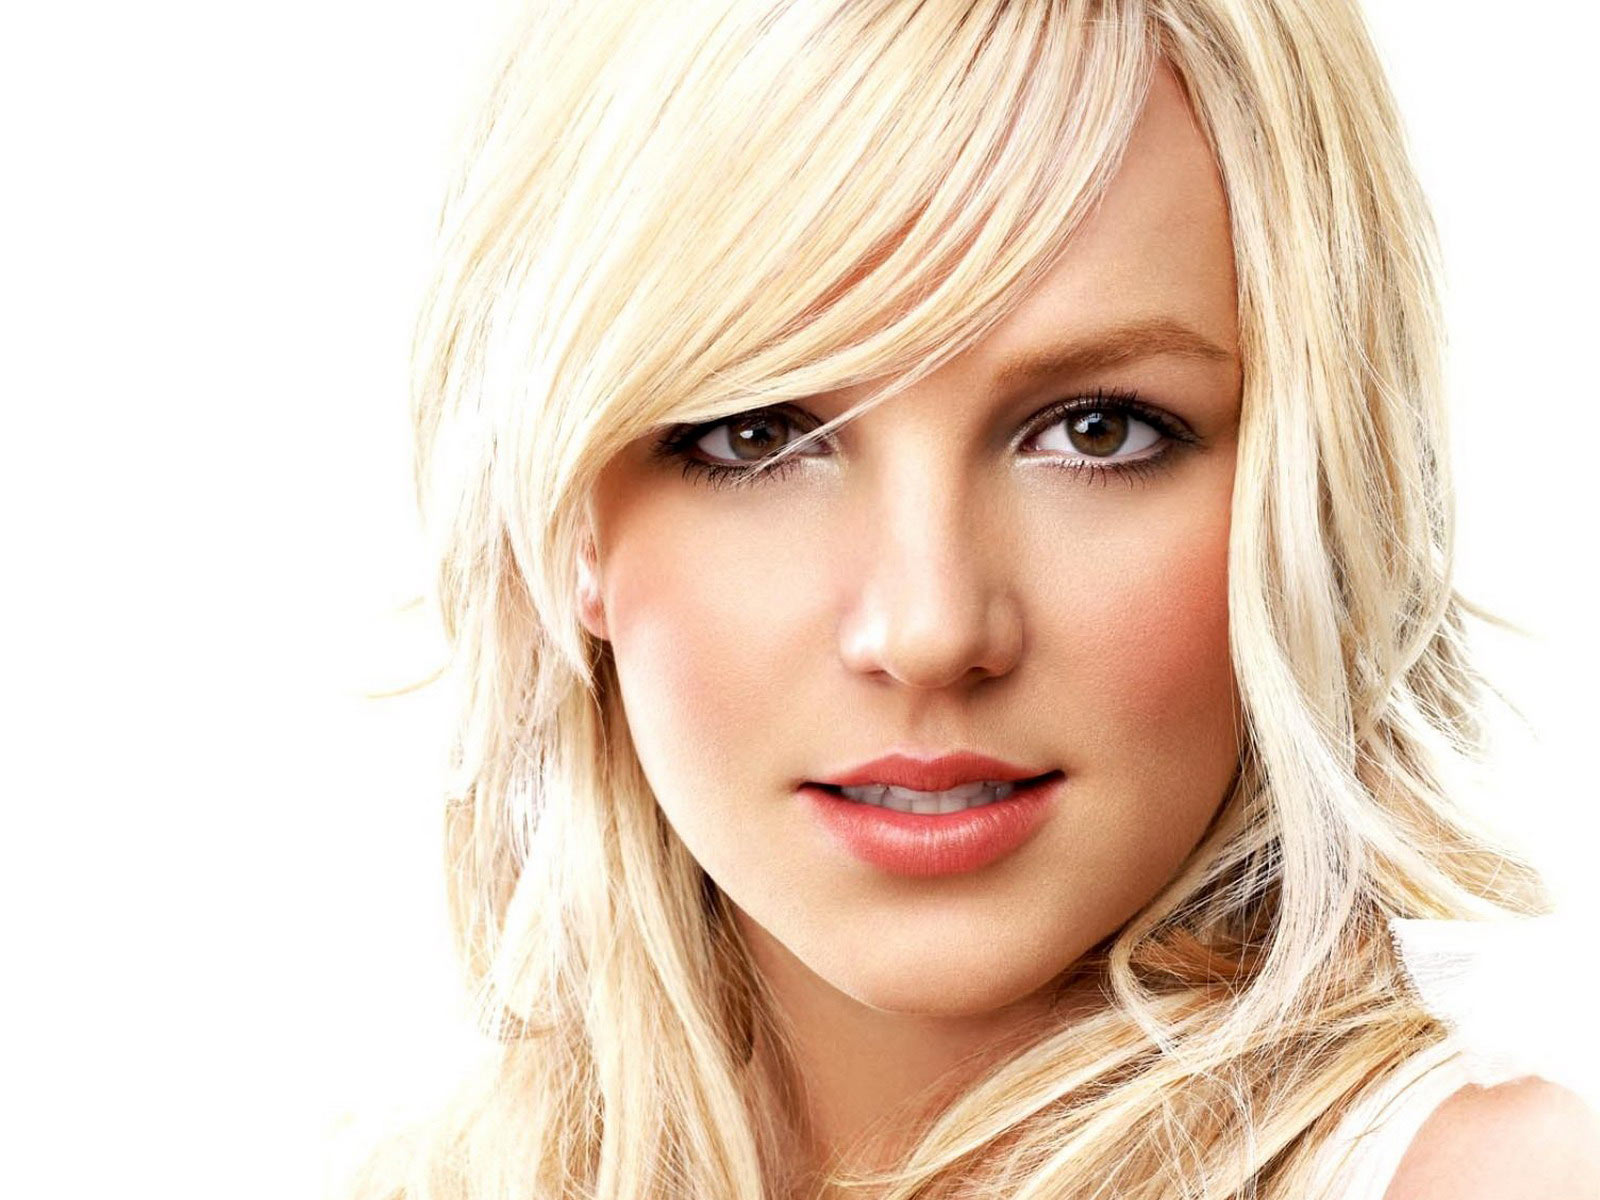 http://1.bp.blogspot.com/-ks88NXev7OQ/Tl0lwiErIXI/AAAAAAAACLY/iQi91ADC4tA/s1600/Britney+Spears+Womanizer+Wallpaper+11.jpg